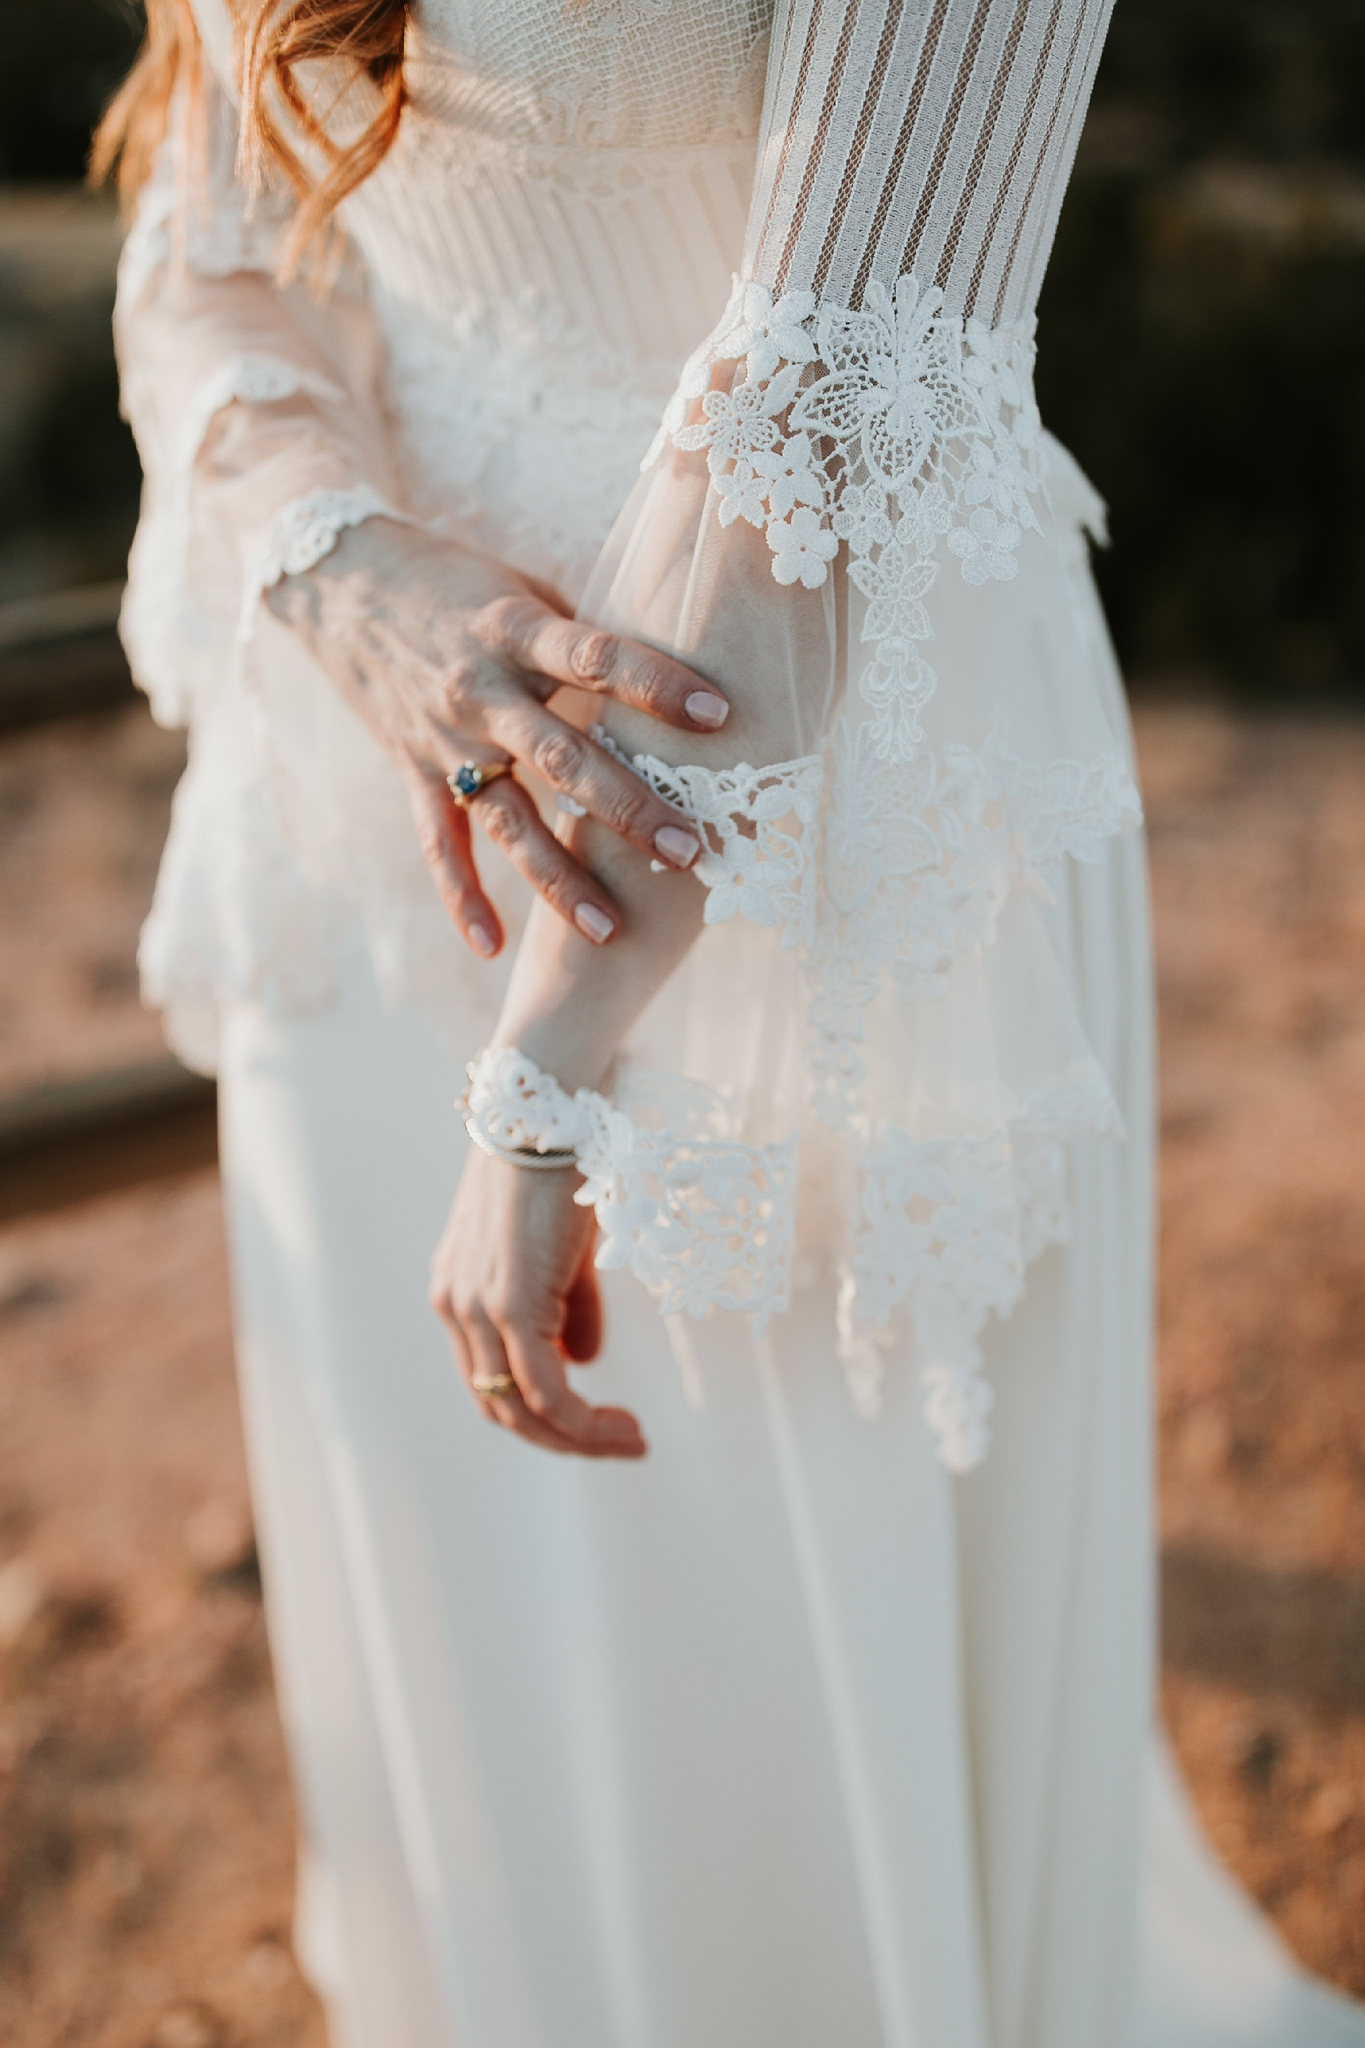 Alicia+lucia+photography+-+albuquerque+wedding+photographer+-+santa+fe+wedding+photography+-+new+mexico+wedding+photographer+-+new+mexico+wedding+-+wedding+gowns+-+bridal+gowns+-+a+line+wedding+gown_0045.jpg